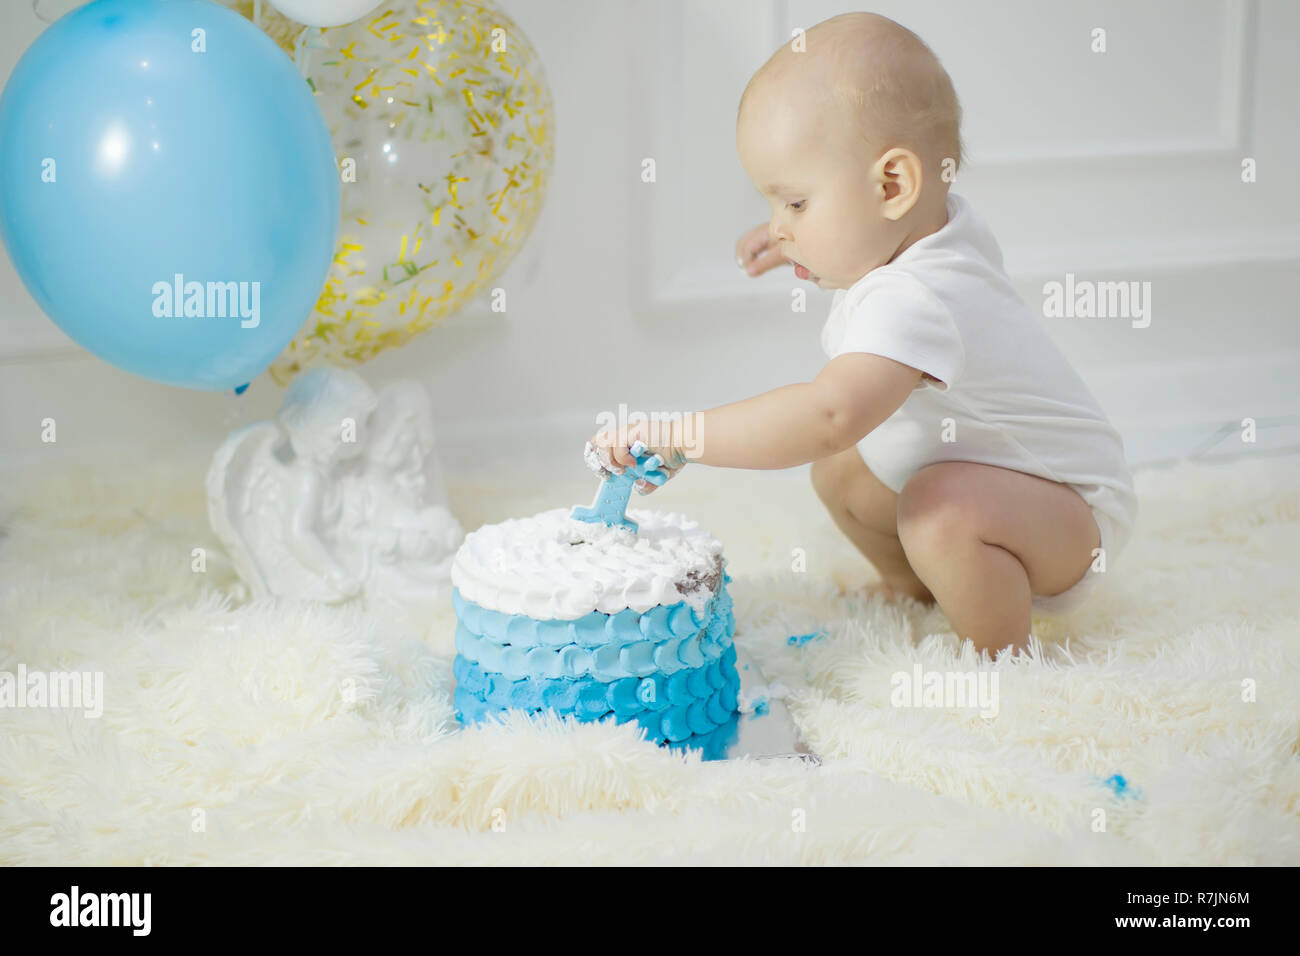 Admirable One Year Old Child With A Birthday Cake First Birthday Stock Funny Birthday Cards Online Elaedamsfinfo